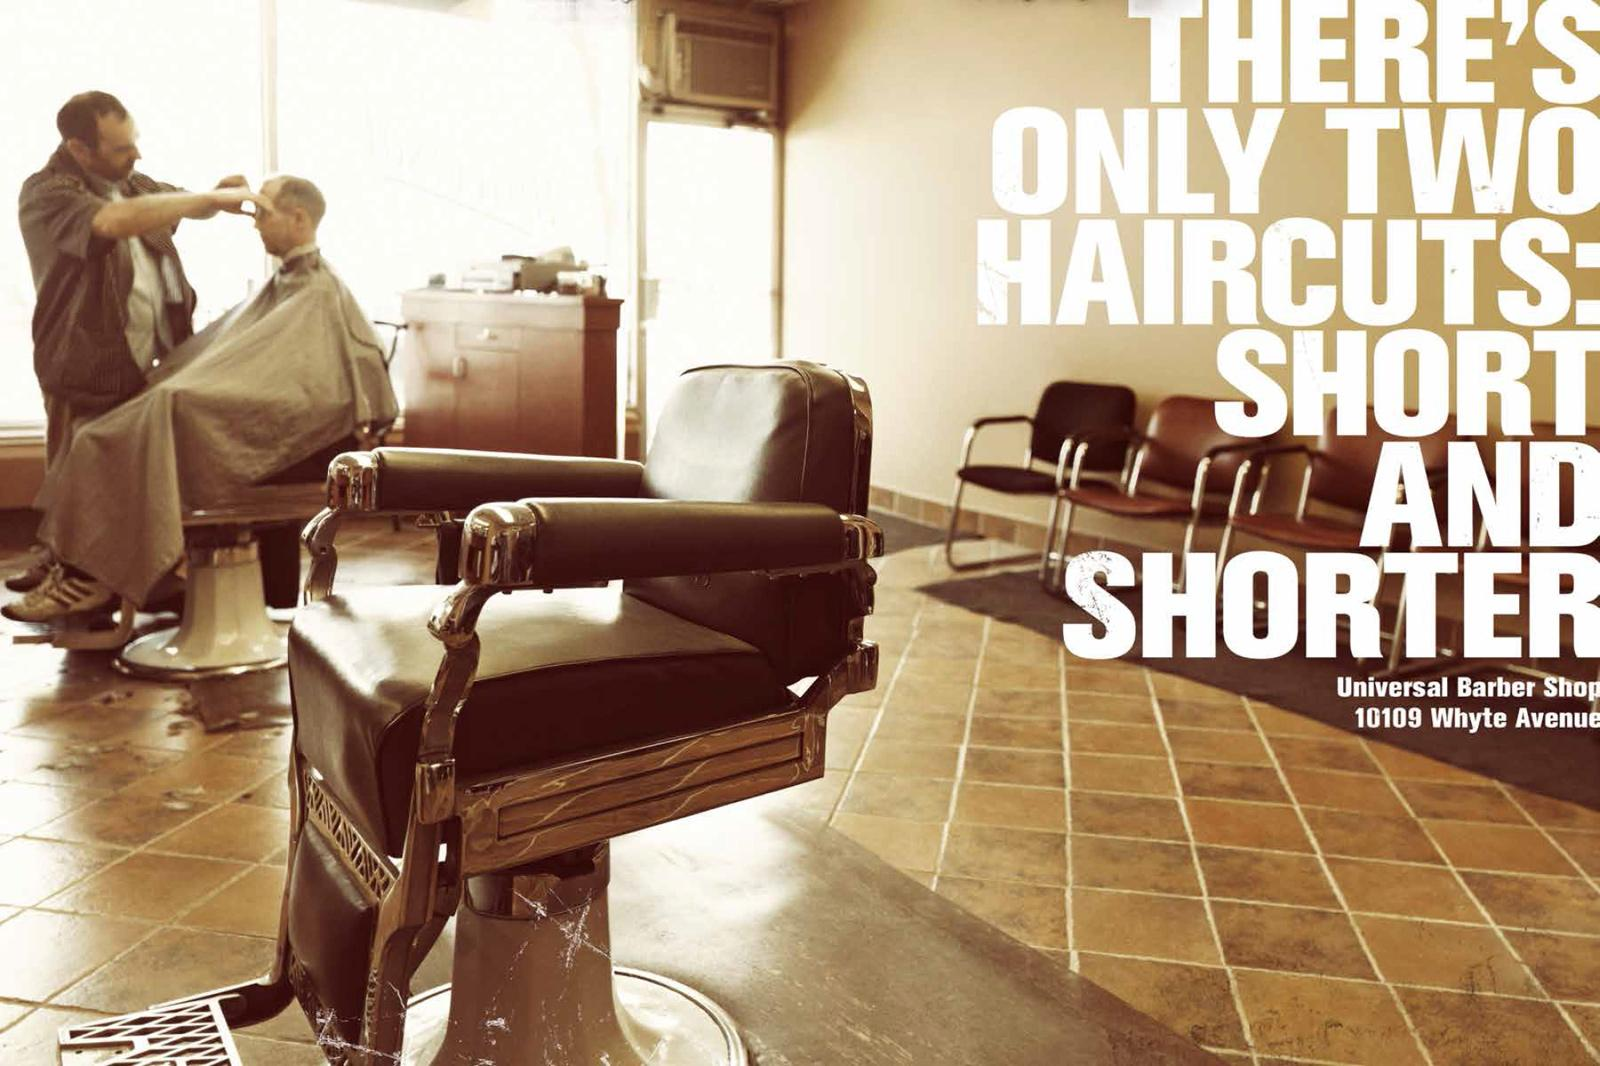 Universal Barber Shop Print Ad -  Short